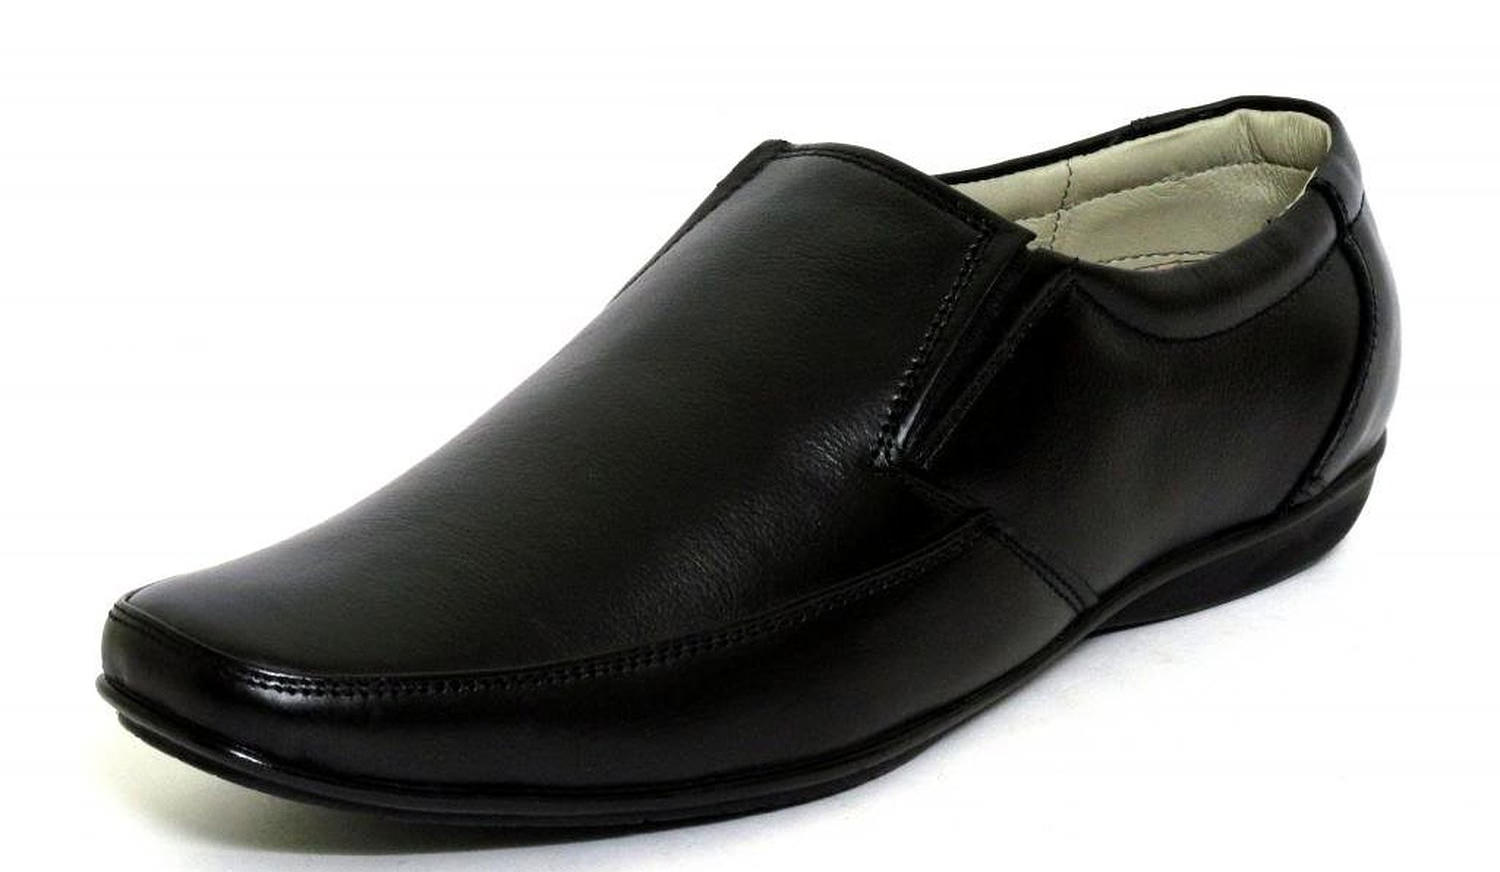 Fbt Black Slip On Formal Leather Shoe